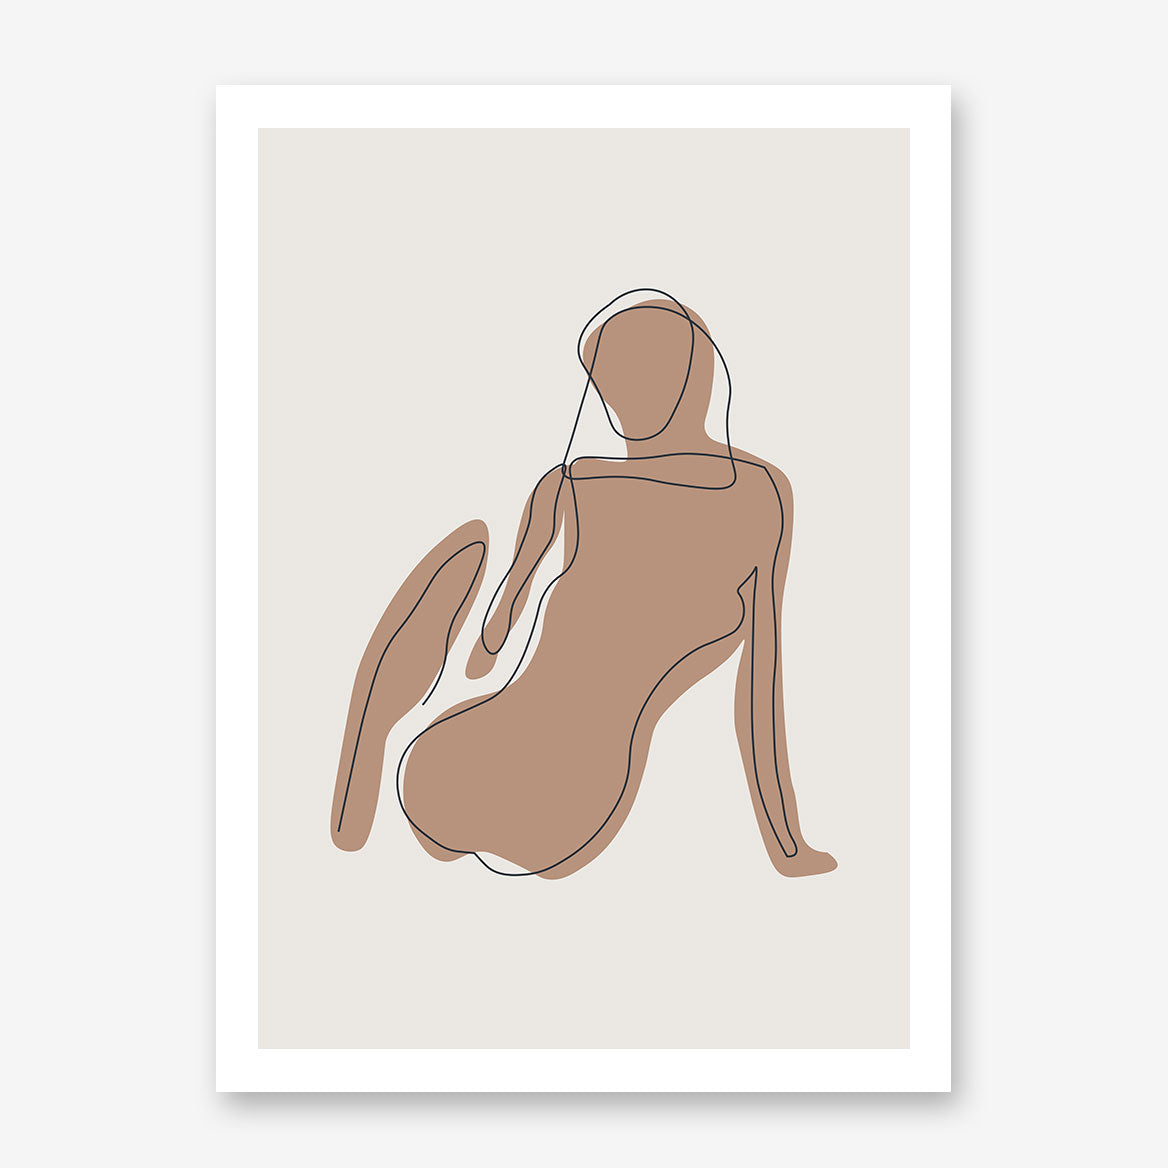 Black line art poster print with a woman on natural tones.